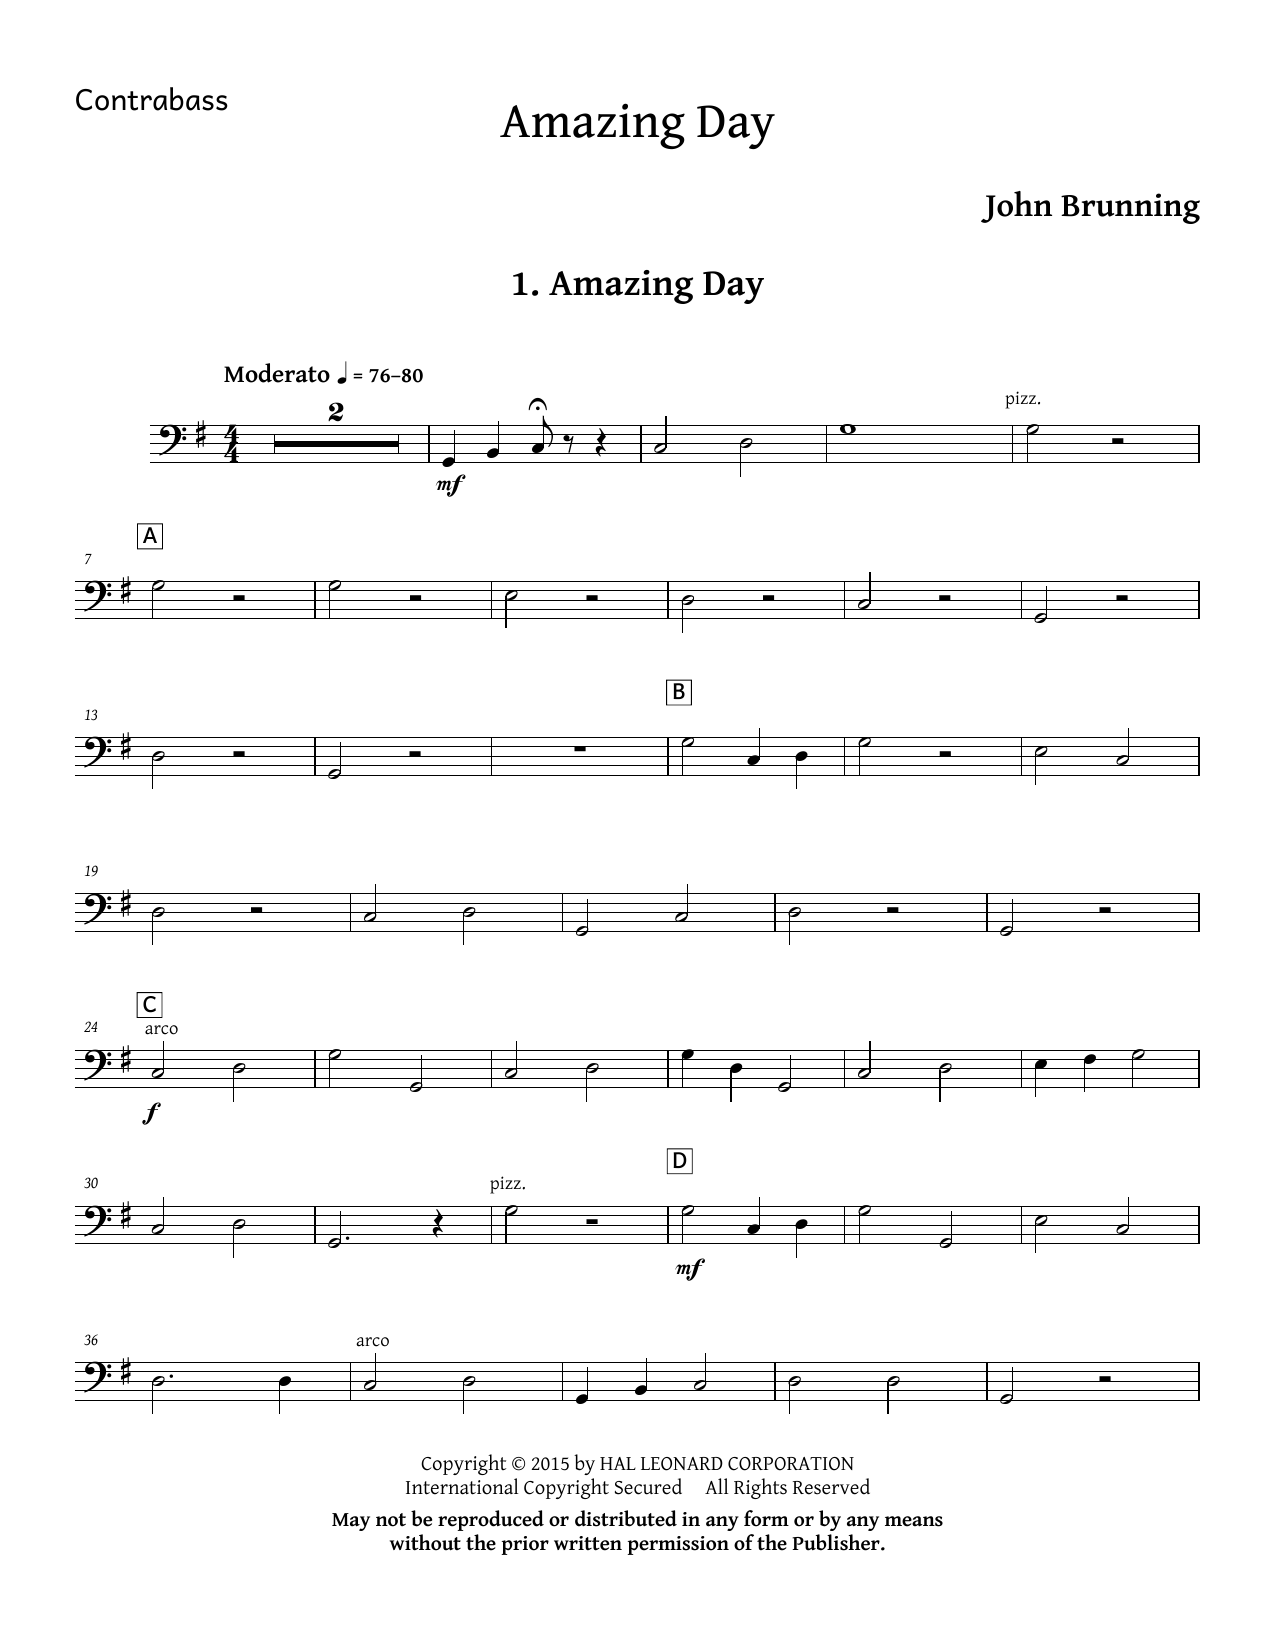 John Brunning Amazing Day - Double Bass sheet music notes and chords. Download Printable PDF.